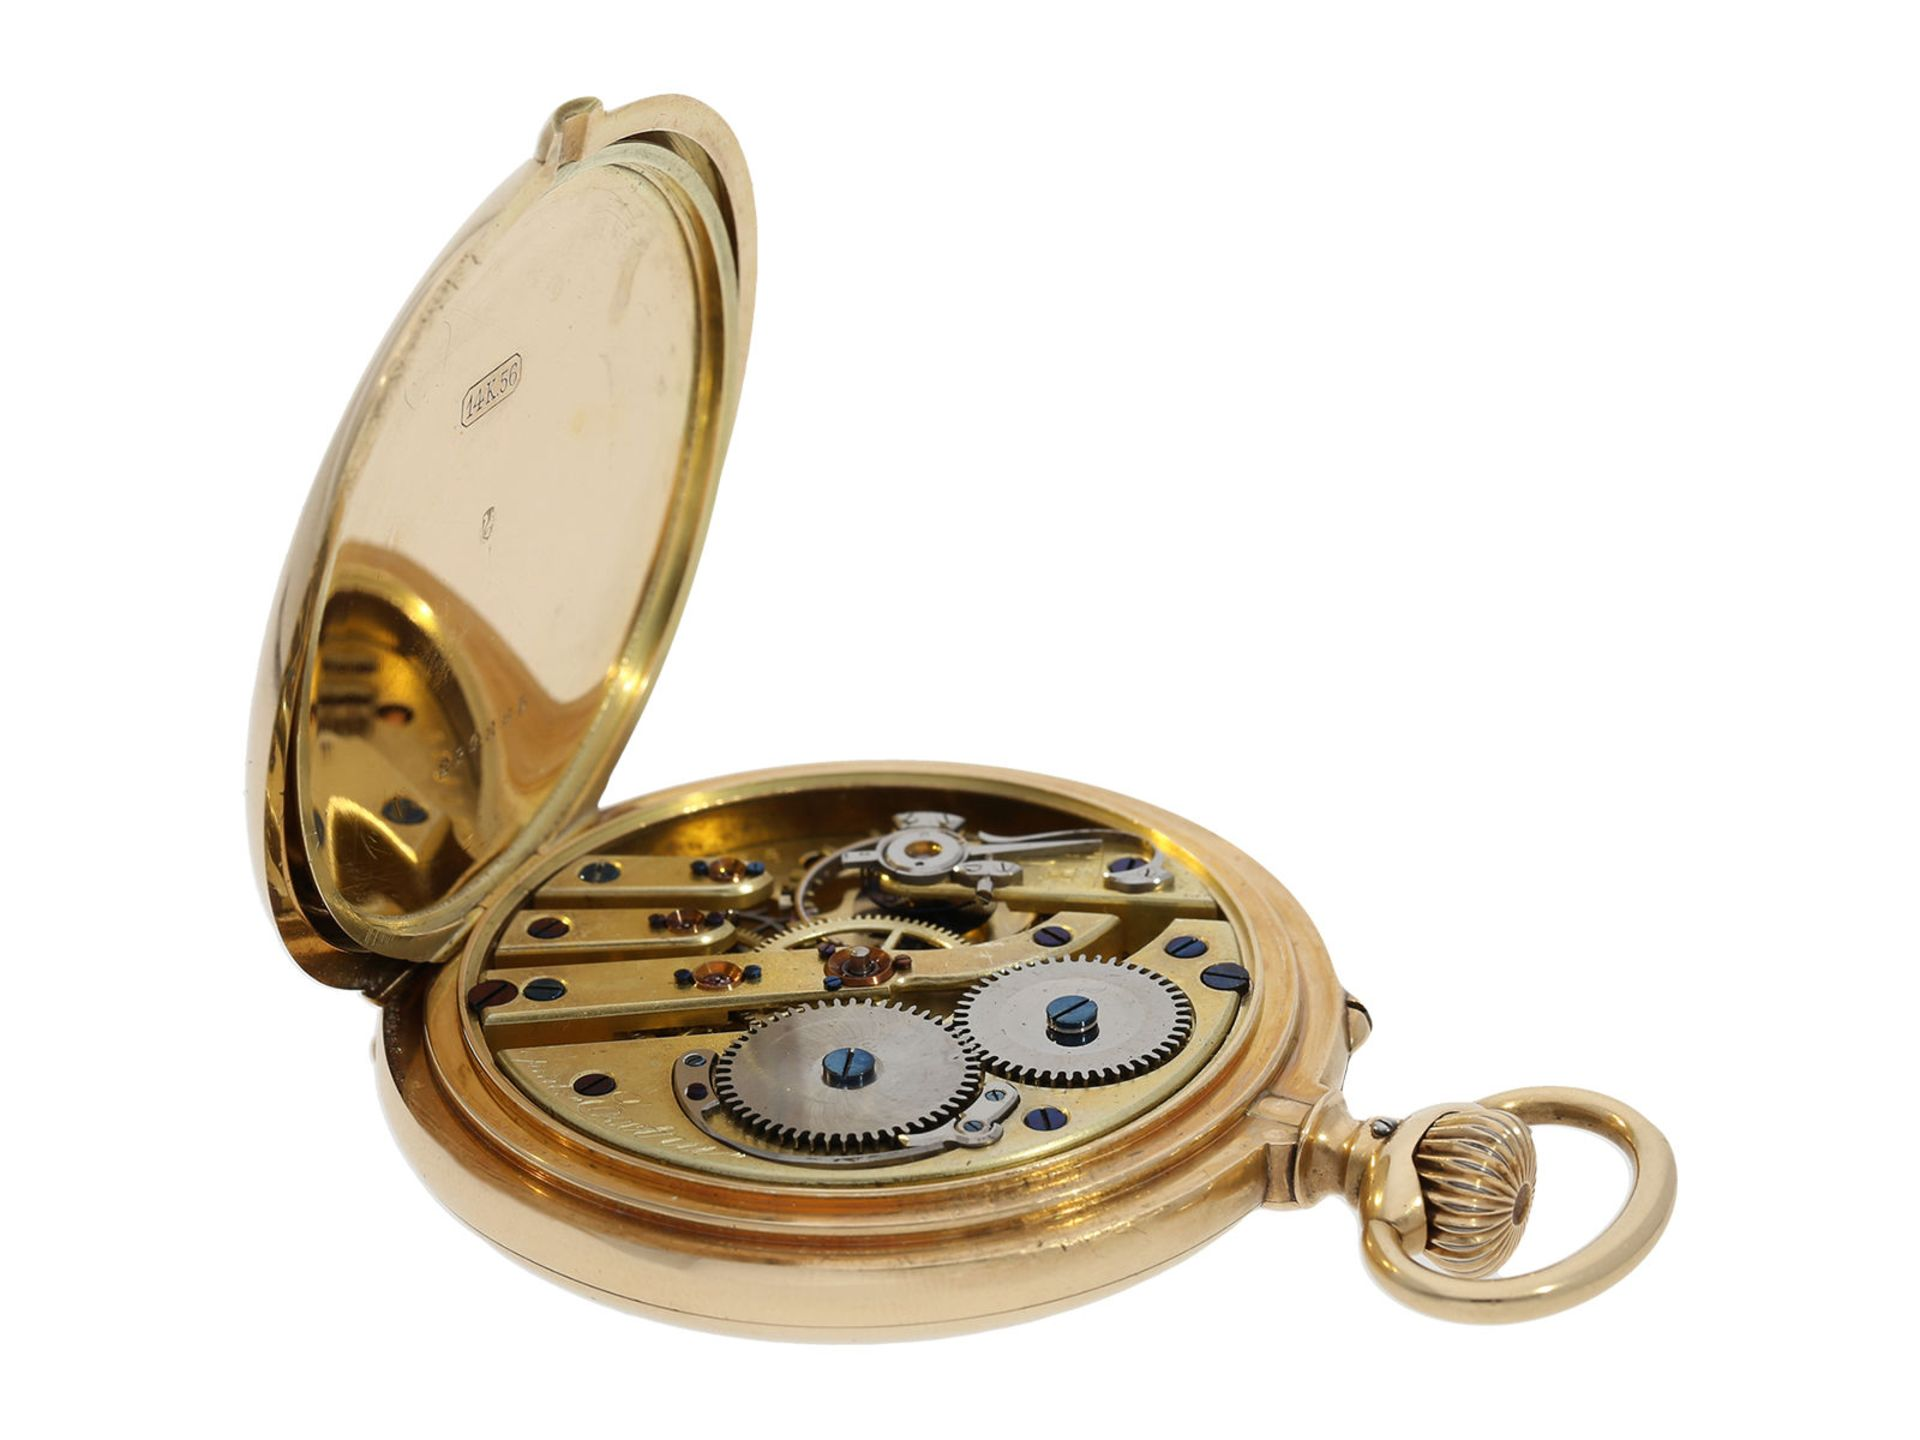 "Pocket watch: very rare IWC precision pocket watch quality ""EXTRA"", No. 181428, Schaffhausen ca. - Bild 3 aus 6"